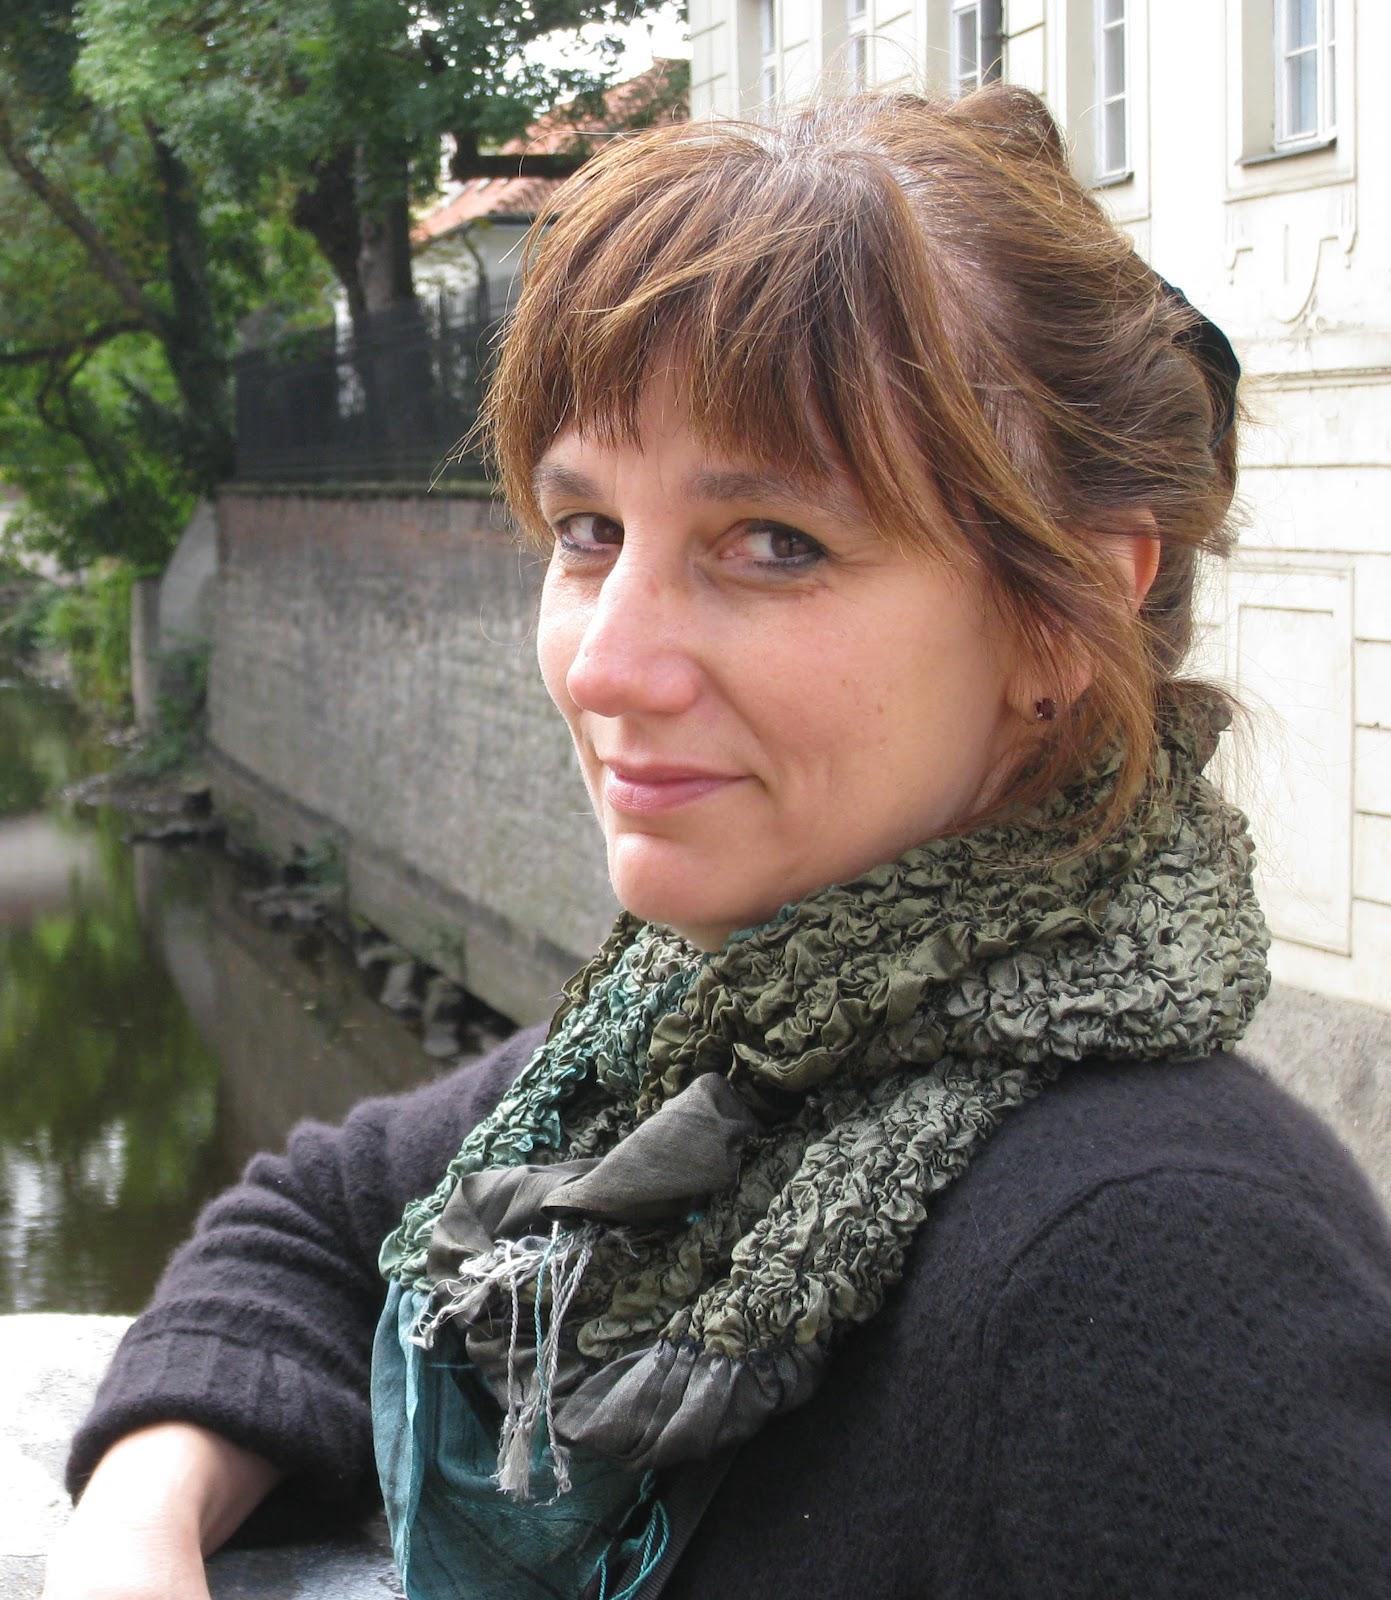 Professional author photo of Mira Bartók, a brown-haired, white-skinned woman wearing a scarf.